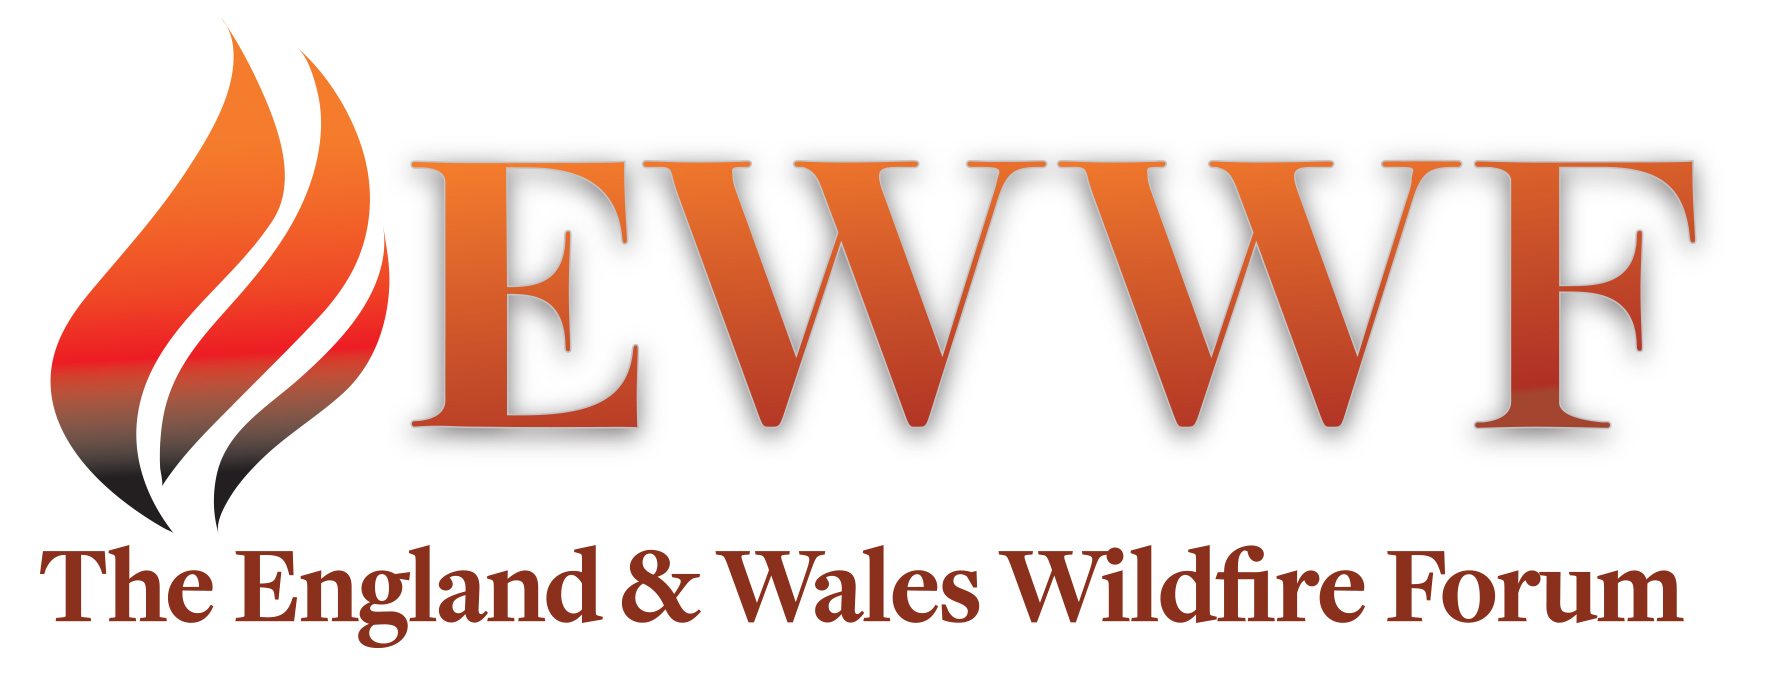 Image showing England & Wales Wildfire Forum (EWWF)